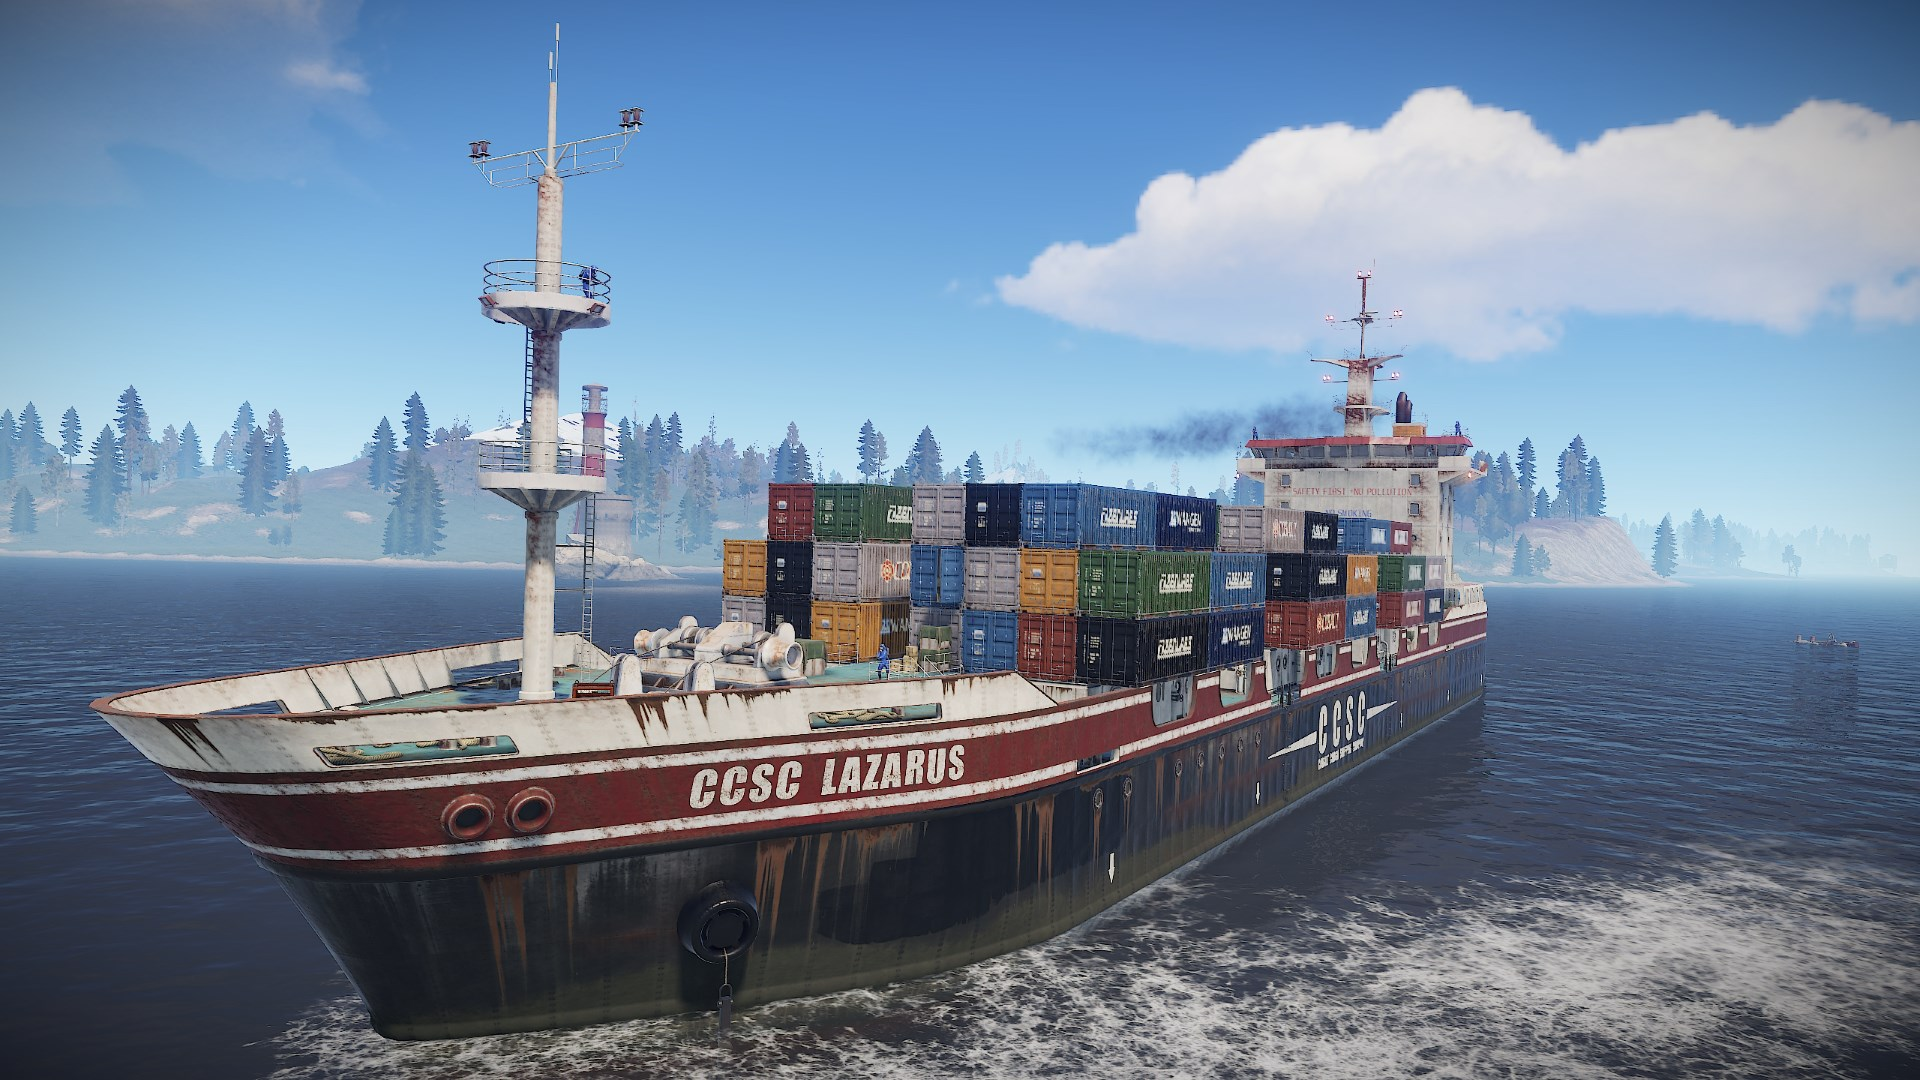 Rust gets a big boat filled with toys in the Cargo Ship